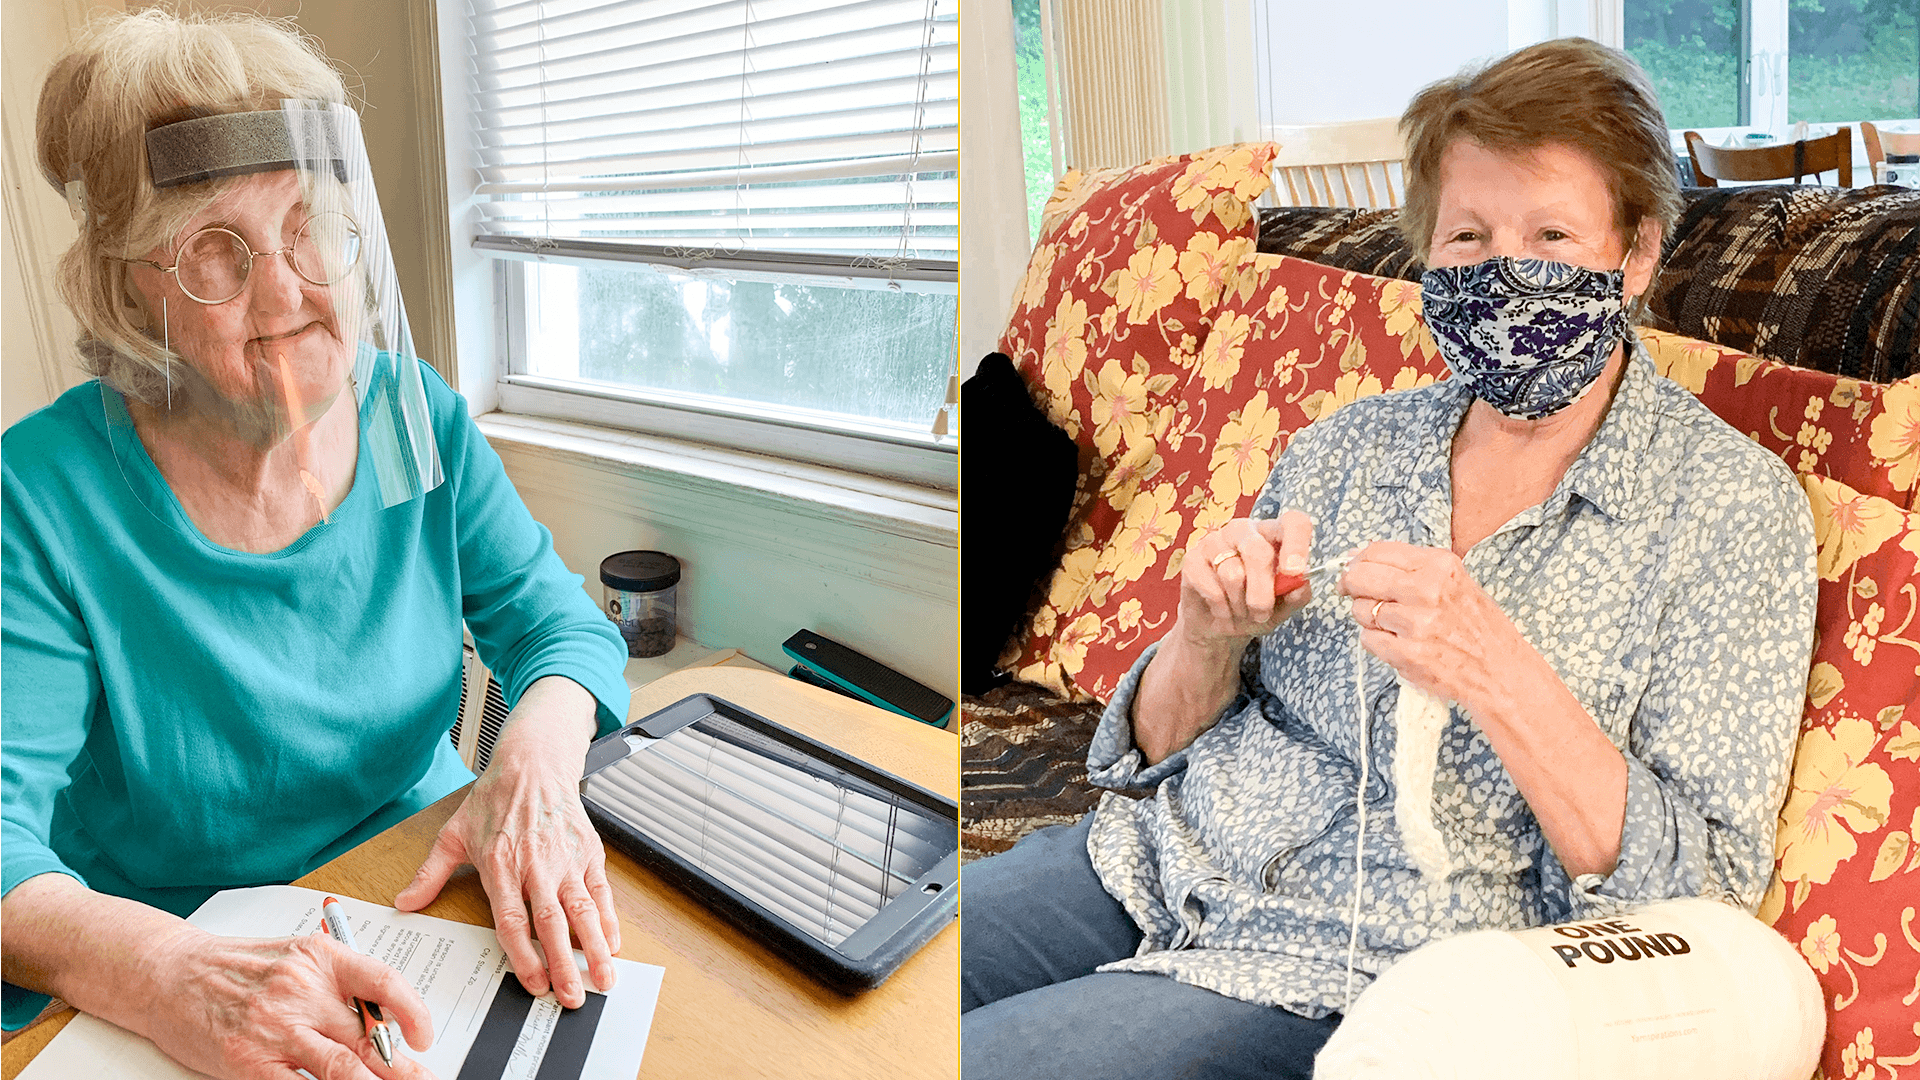 Left: A woman wearing a clear face shield uses a signature guide to sign a document. Right: A woman wearing a mask sits on her couch and knits using thick white fabric.